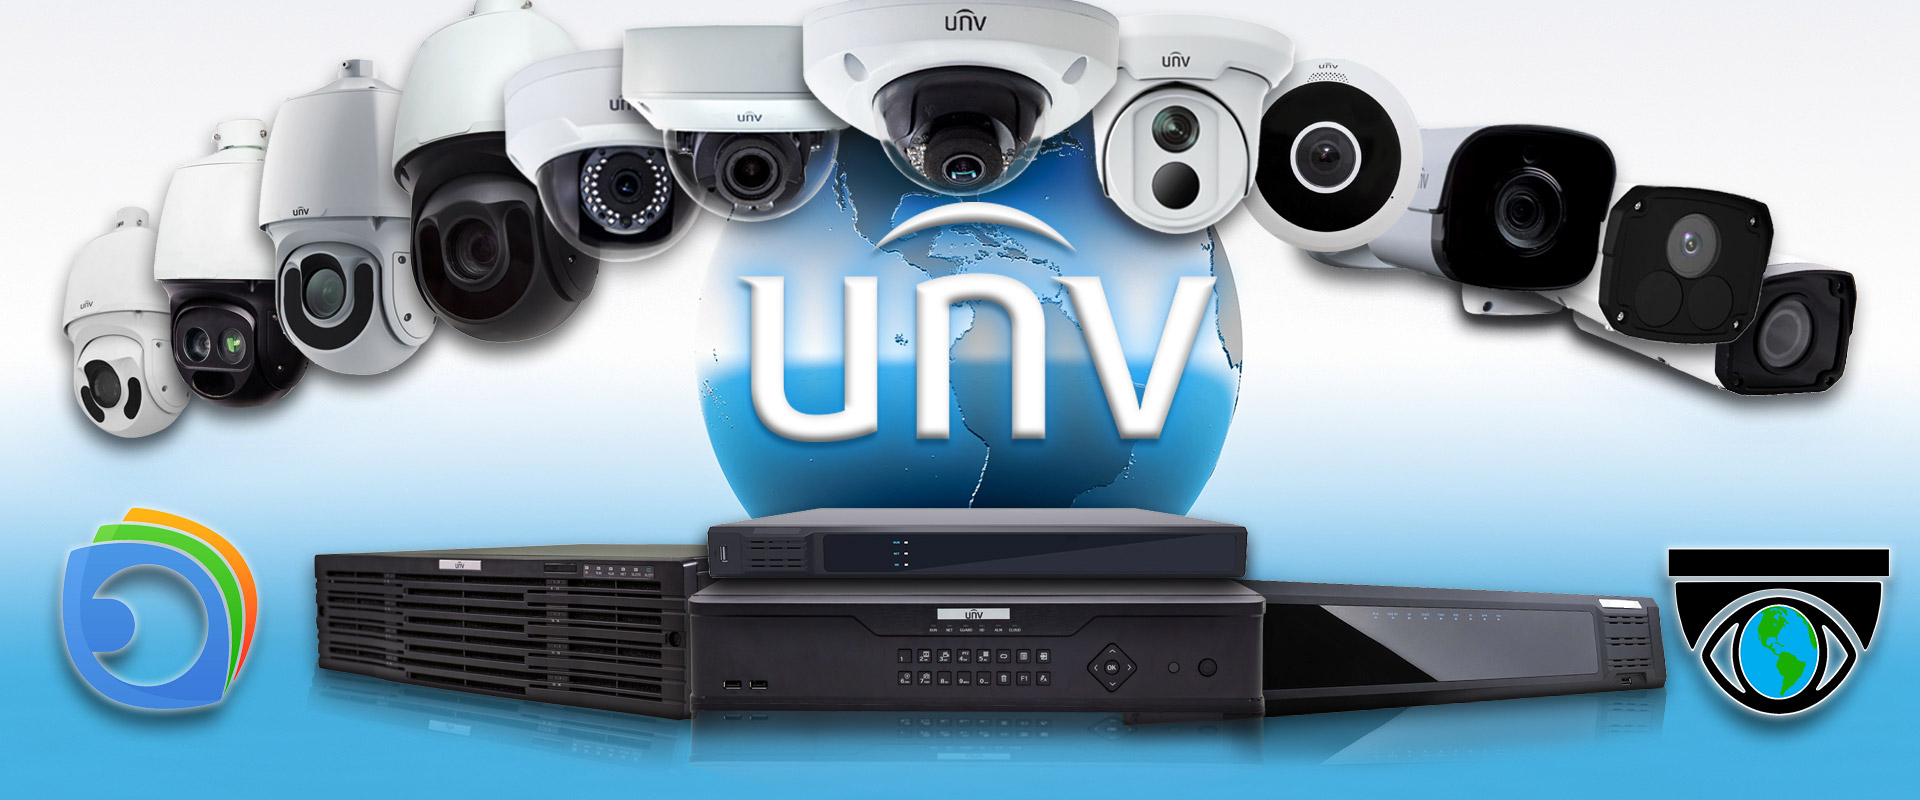 Unv Uniview Ip Camera Systems Worldeyecam